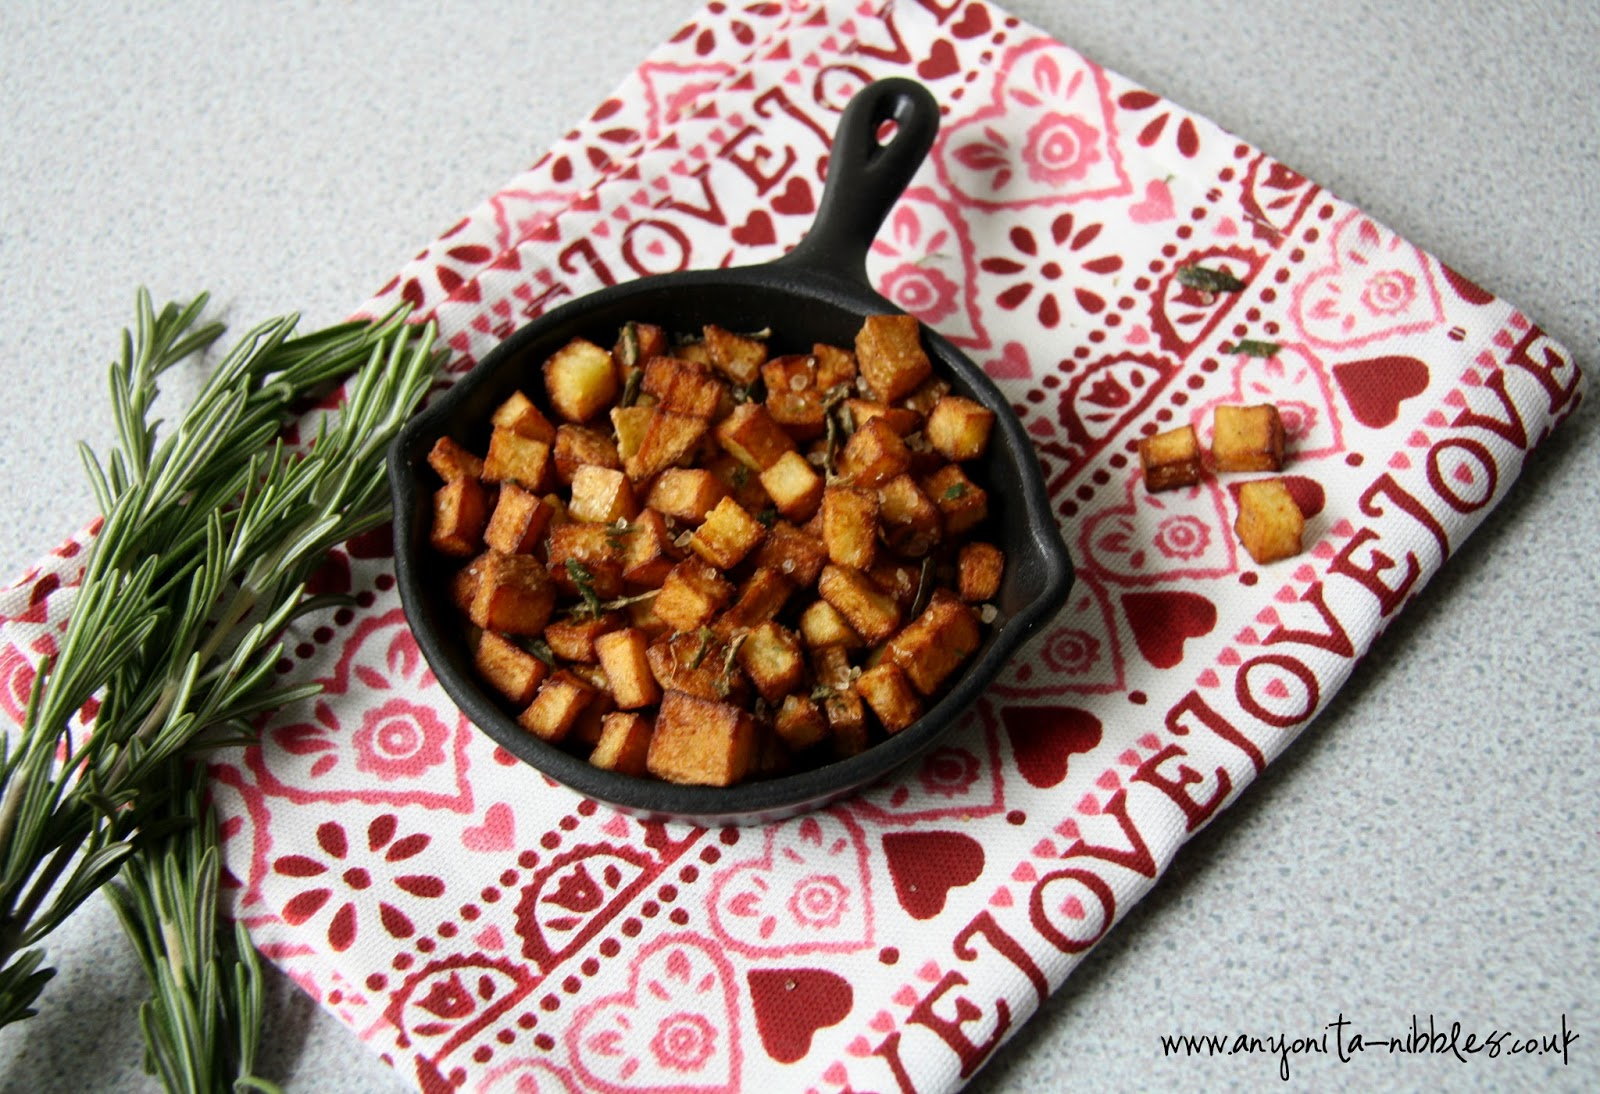 #rosemary with #mediterranean breakfast potatoes #glutenfree #vegan #vegetarian